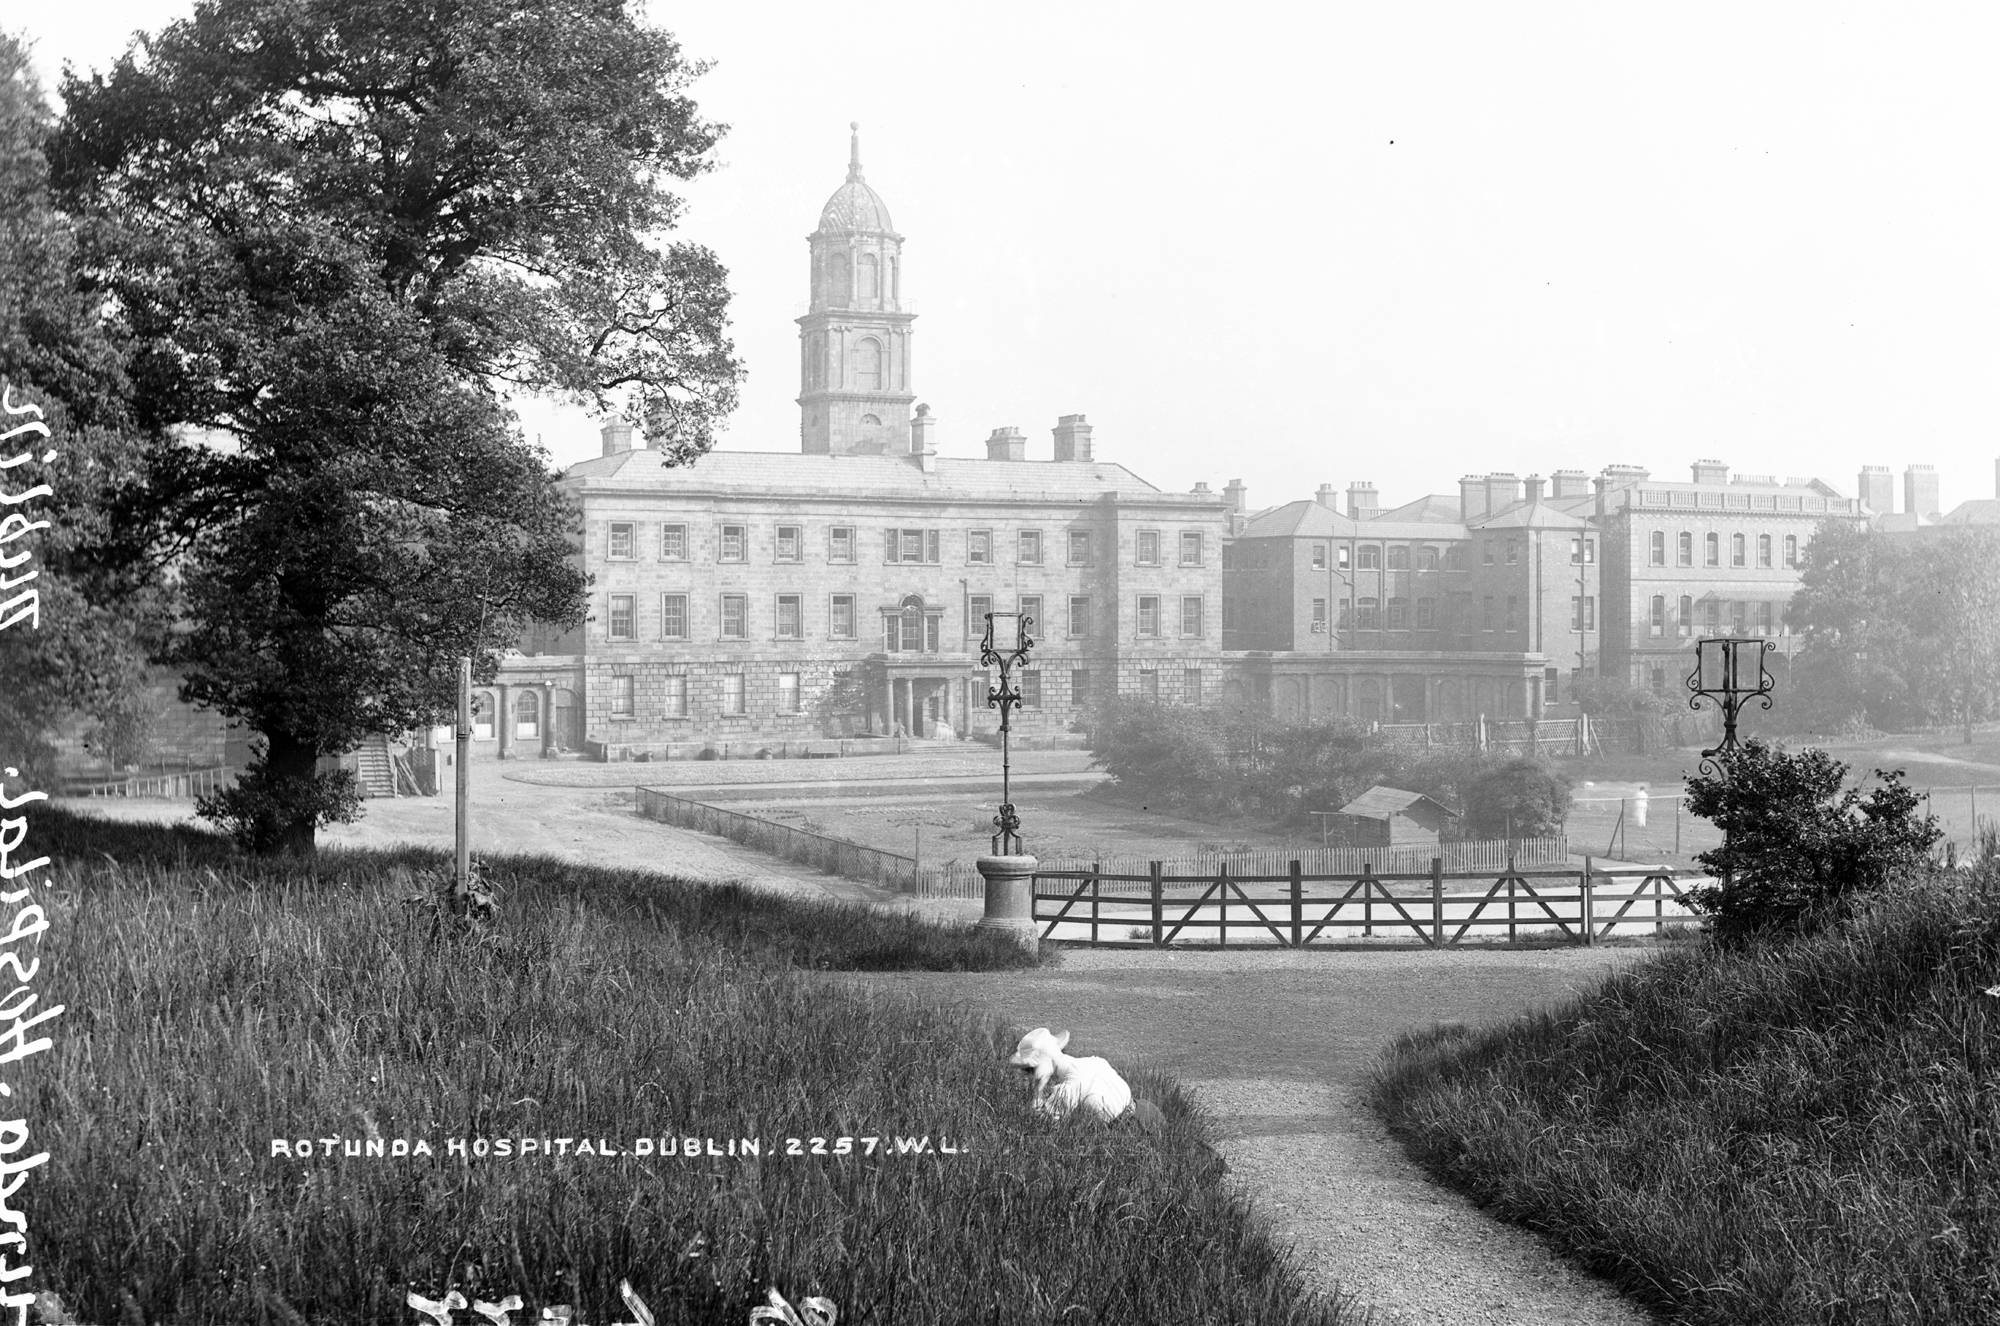 Part of the Lawrence Collection, Robert French probably took this image of the back of the Rotunda (now occupied by the Garden of Remembrance) around 1900. National Library of Ireland.